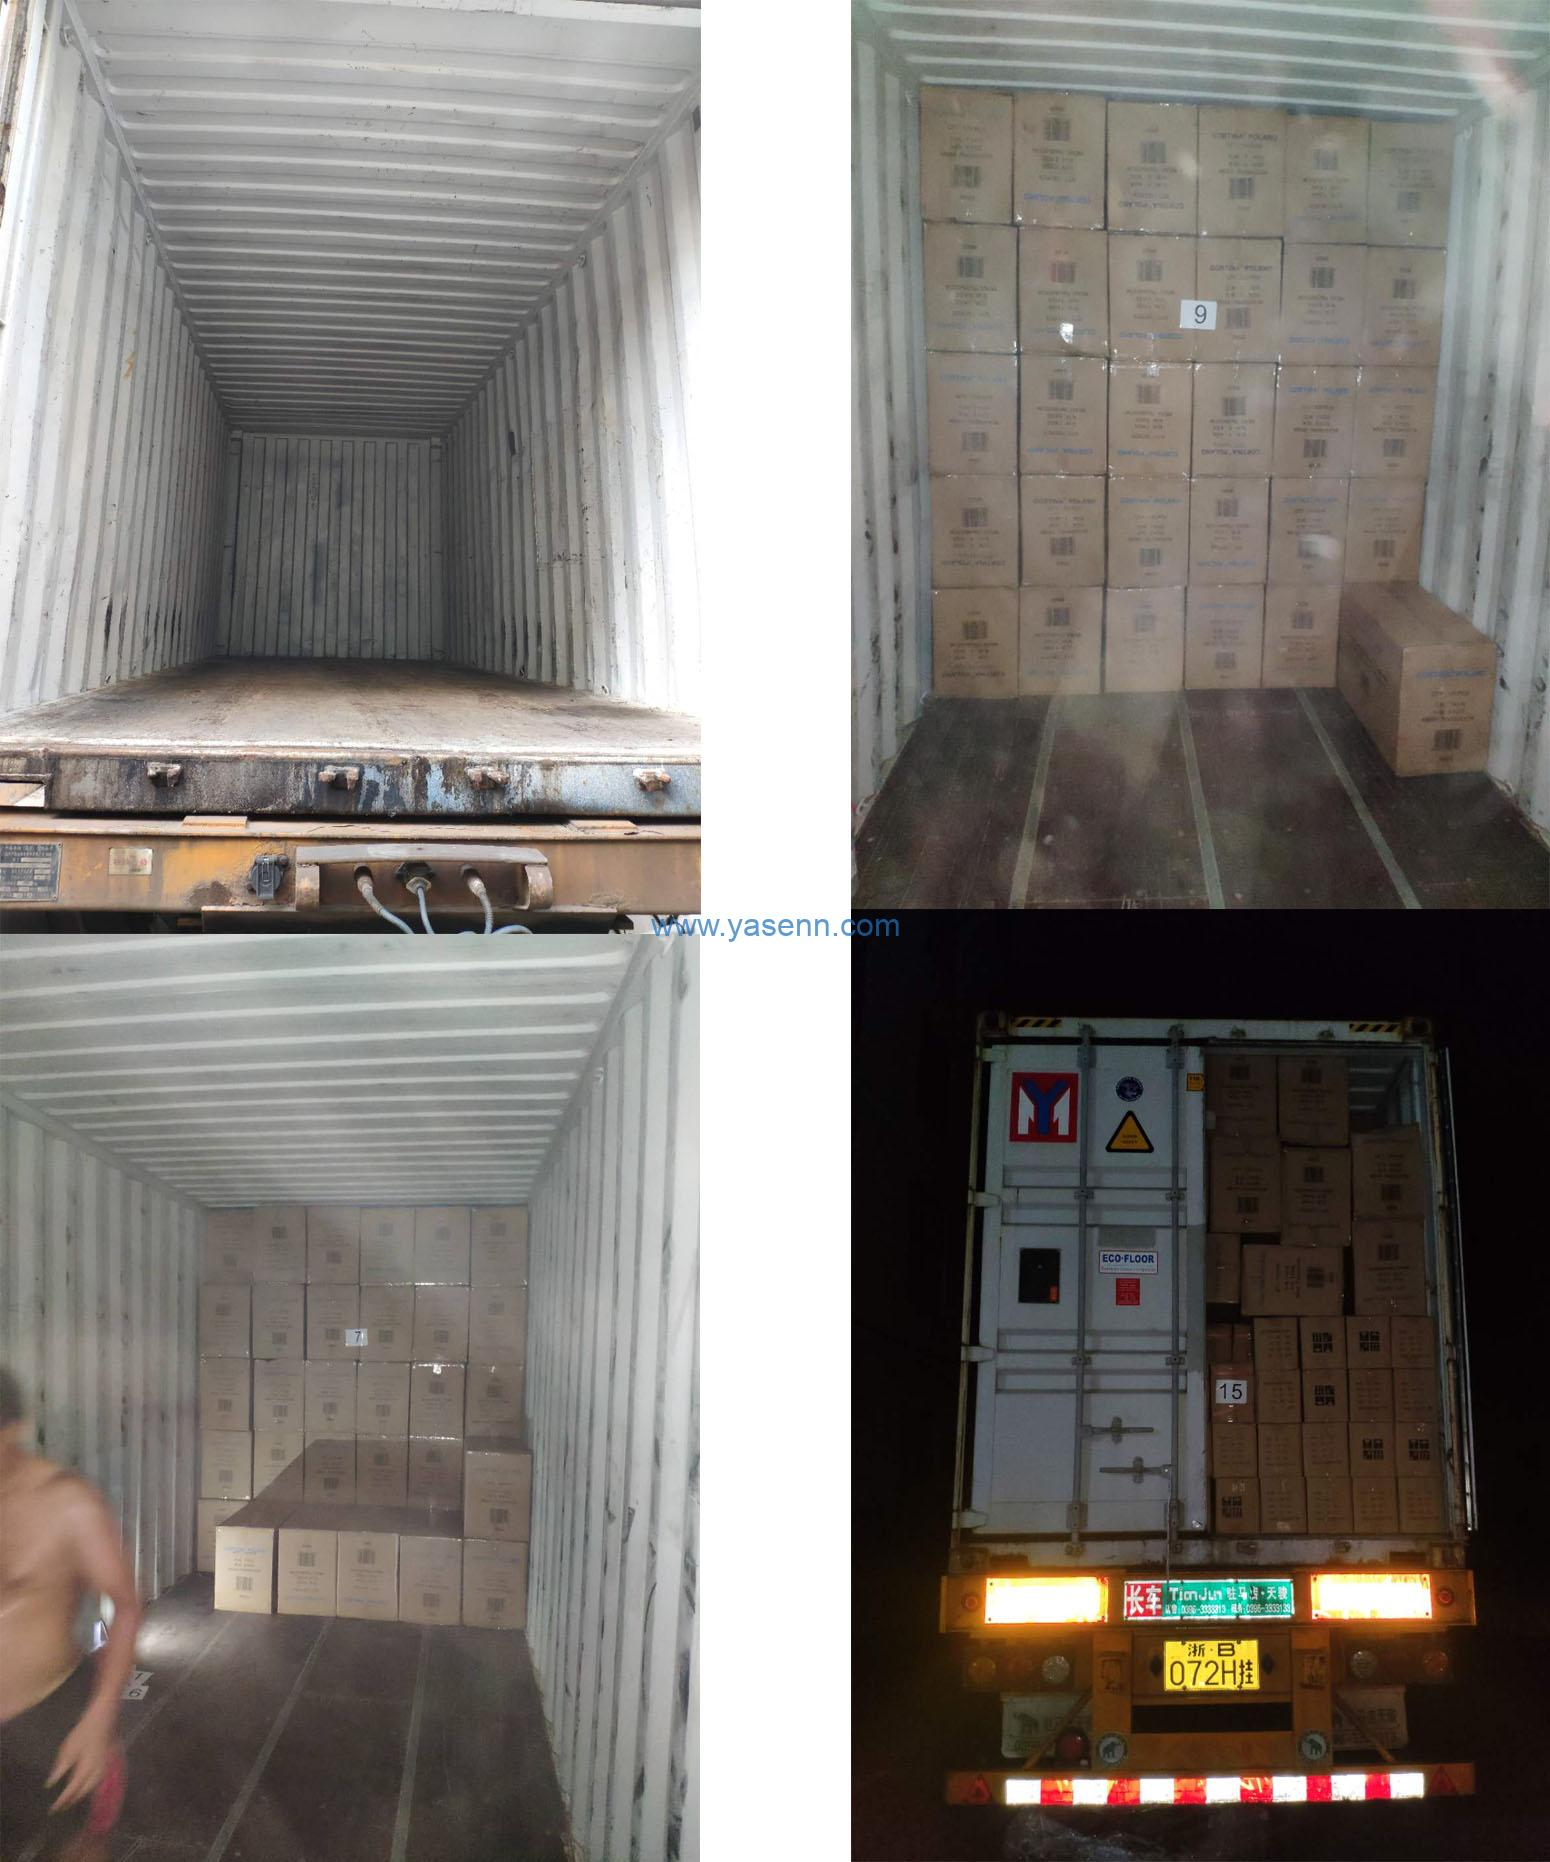 ONE MORE CONTAINER LOADED TODAY